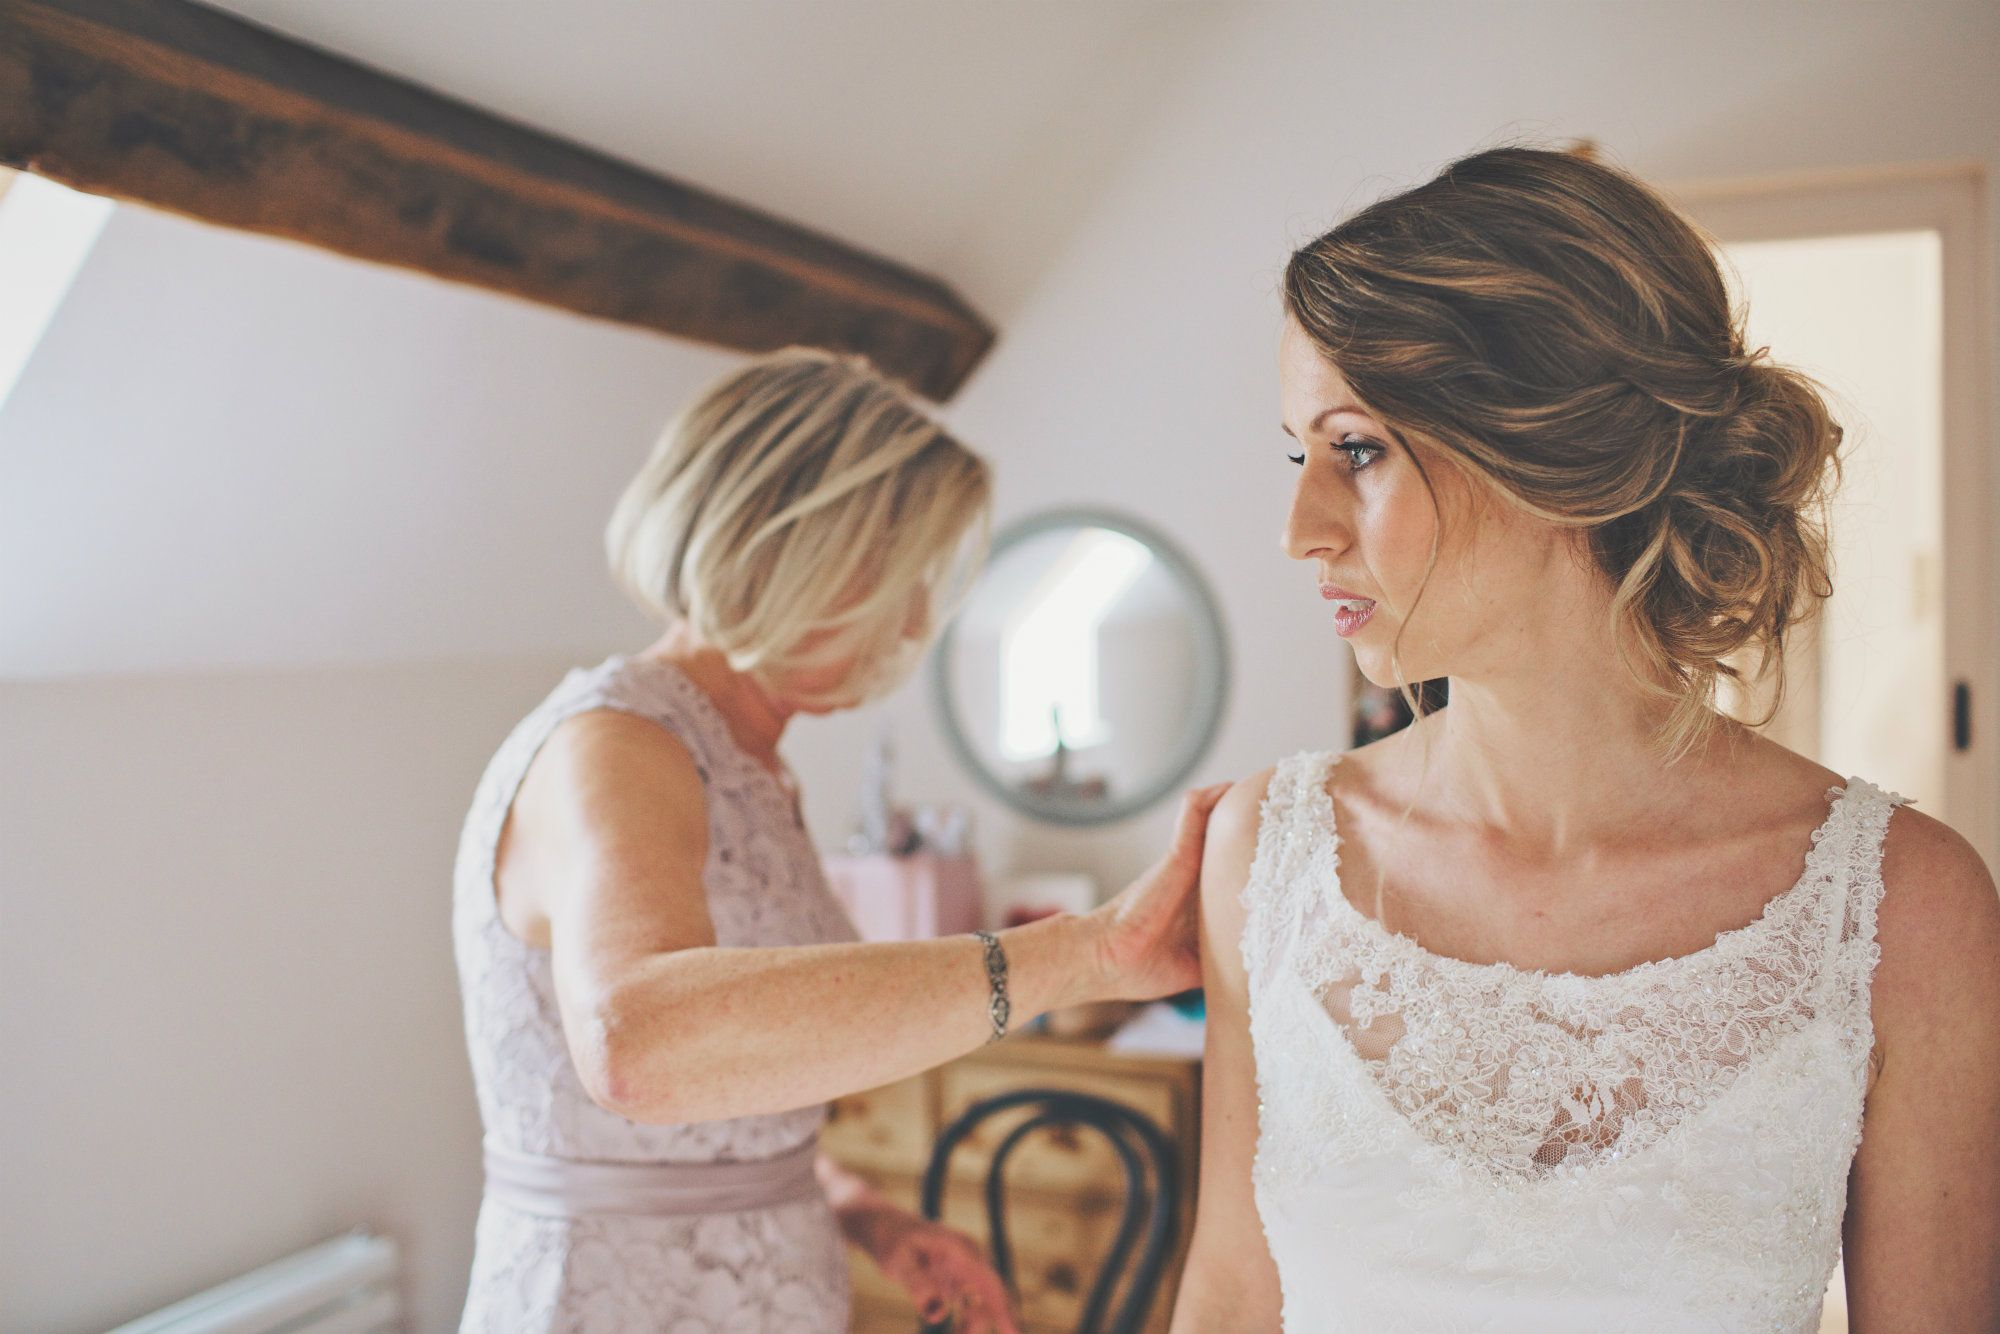 Cotswold-Wedding-Hairstylist-KTWLM-7